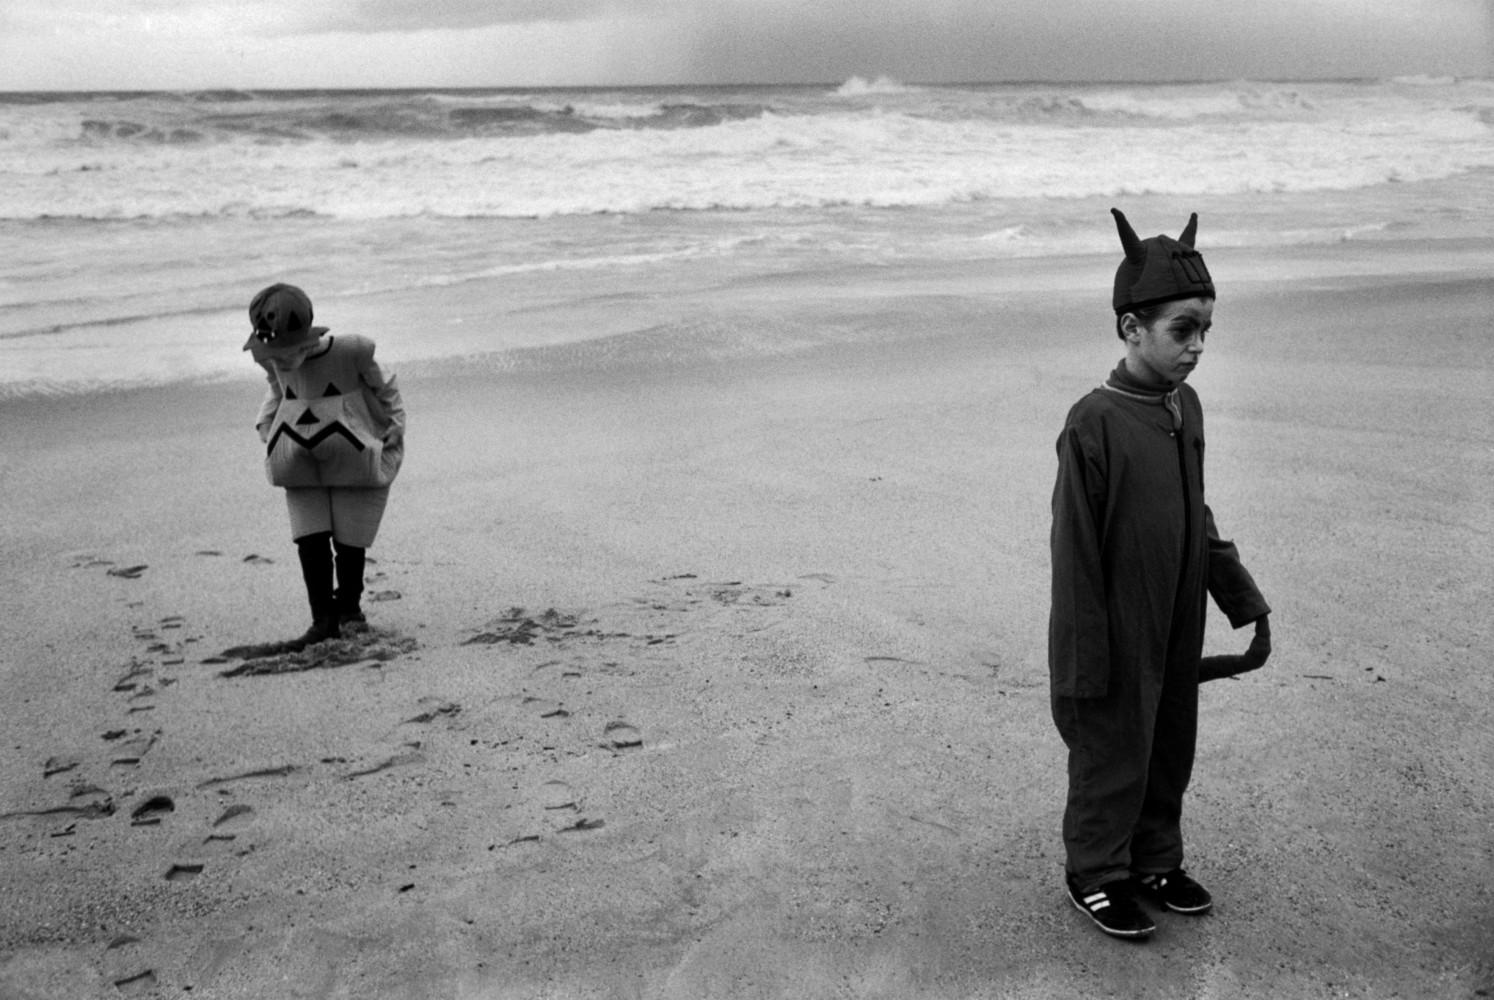 Black and white street photography by Richard Kalvar, two children in fancy dress on the beach in Biarritz, France.